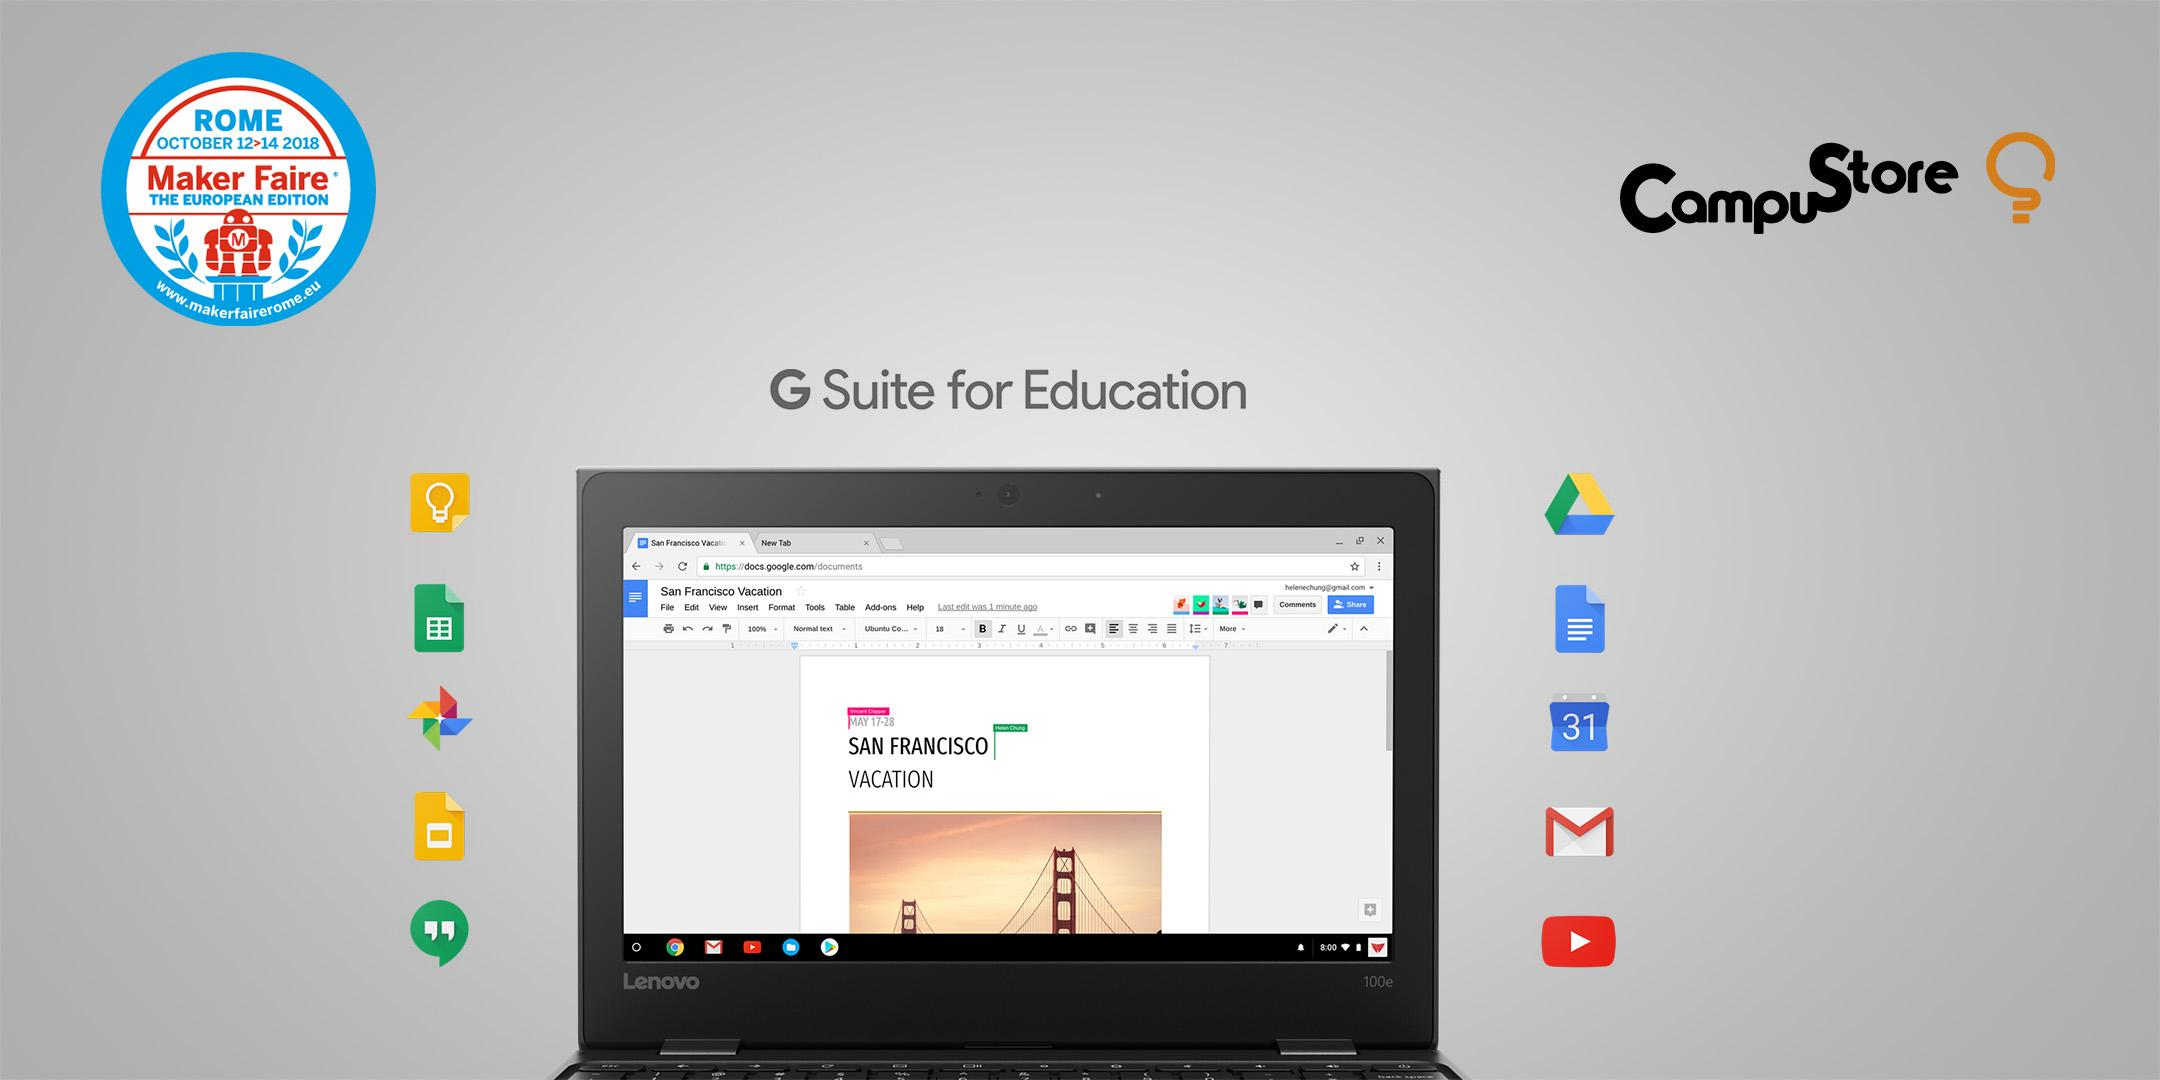 ChromeBook e G Suite: utilizzare Google for Education a scuola